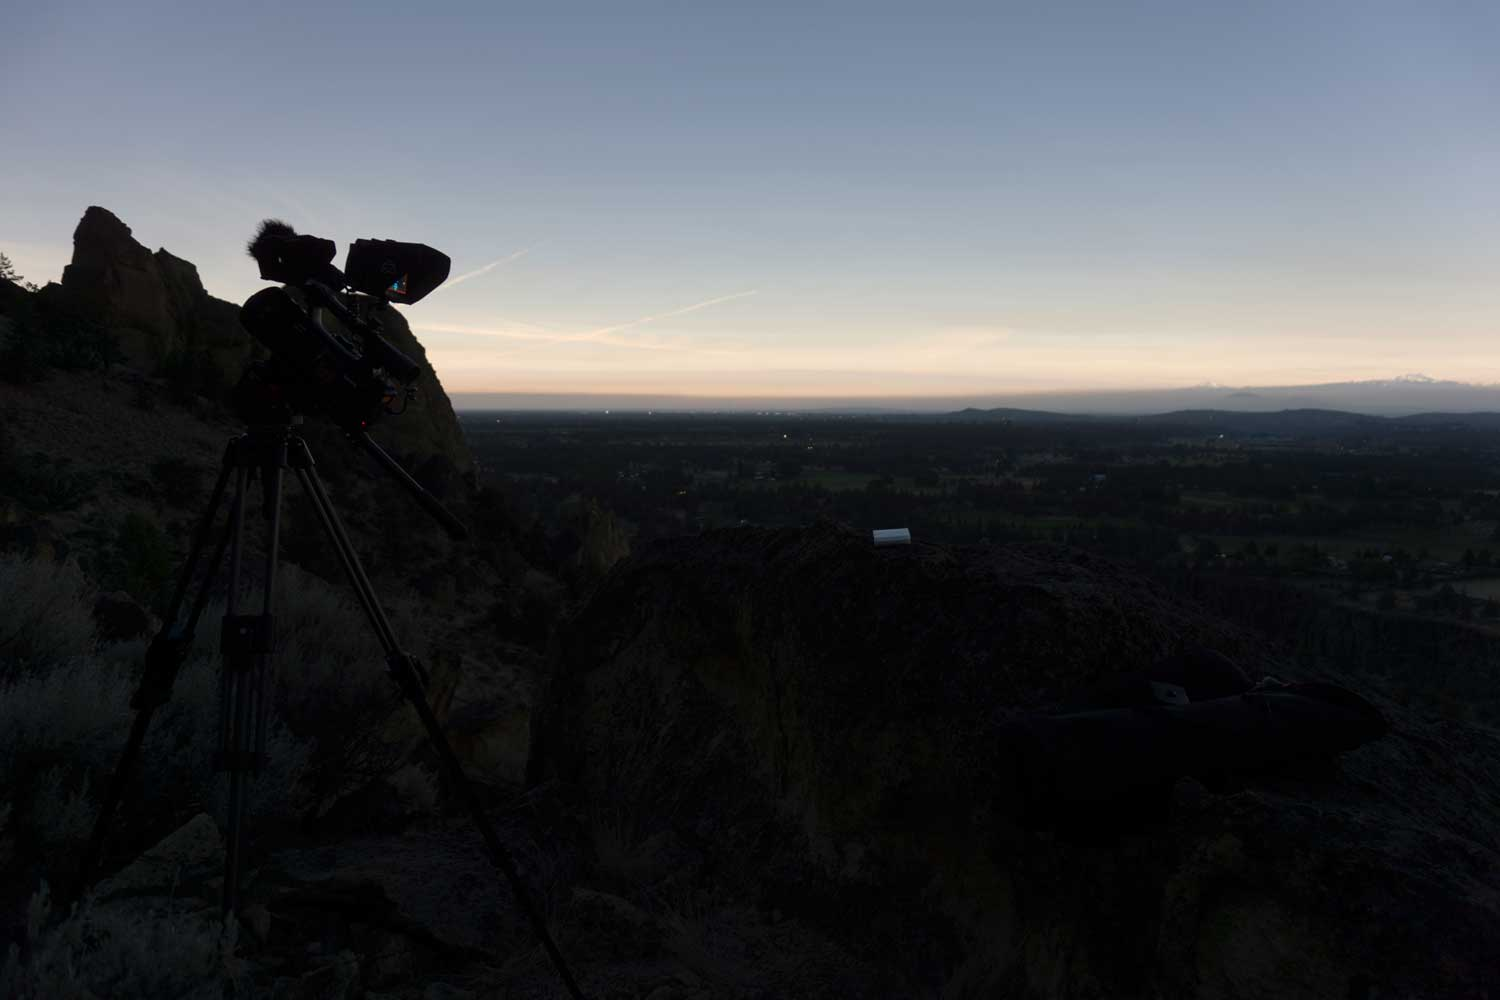 Video camera capturing the start of totality of the Total Solar Eclipse at Smith Rock (Bend is still light in the background)